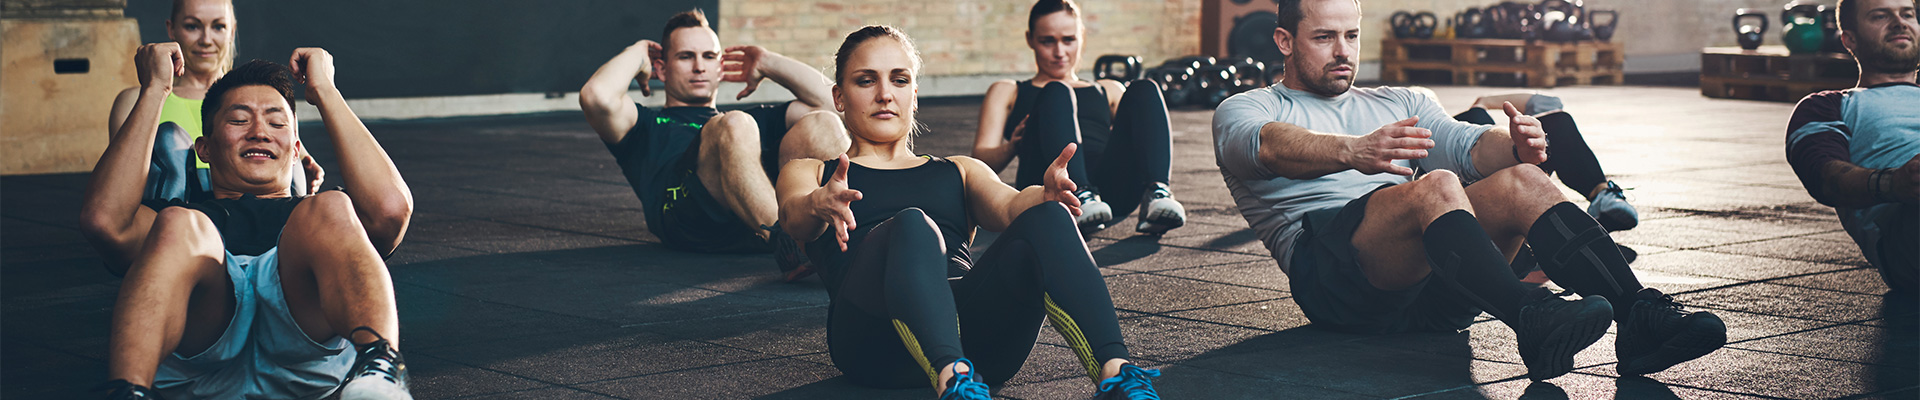 HEALTH & FITNESS @ LCBT Join our Health and Fitness courses